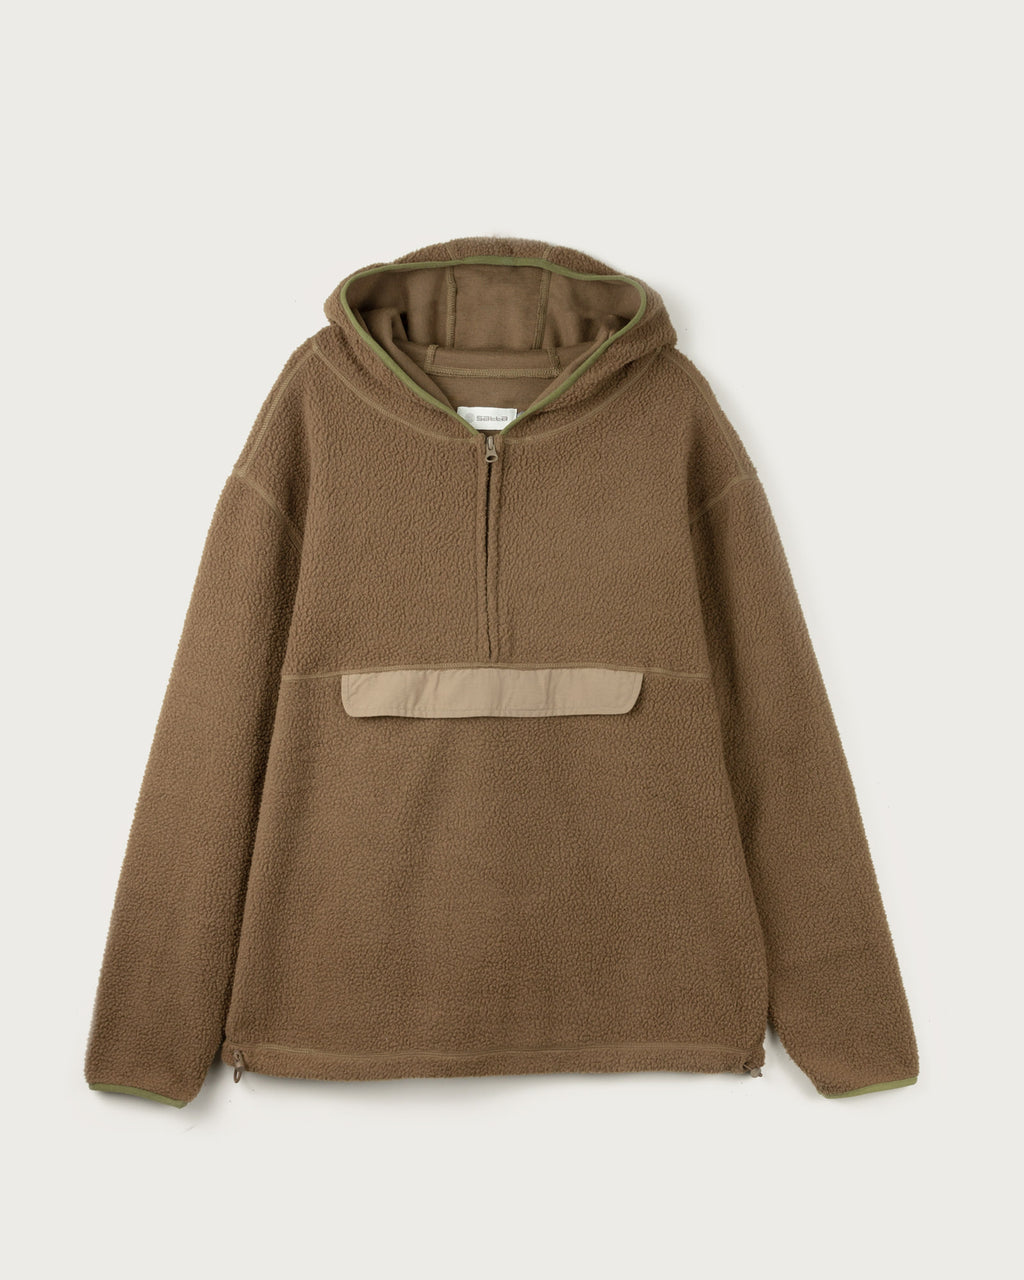 Bushman Fleece - Forest Green - SATTA